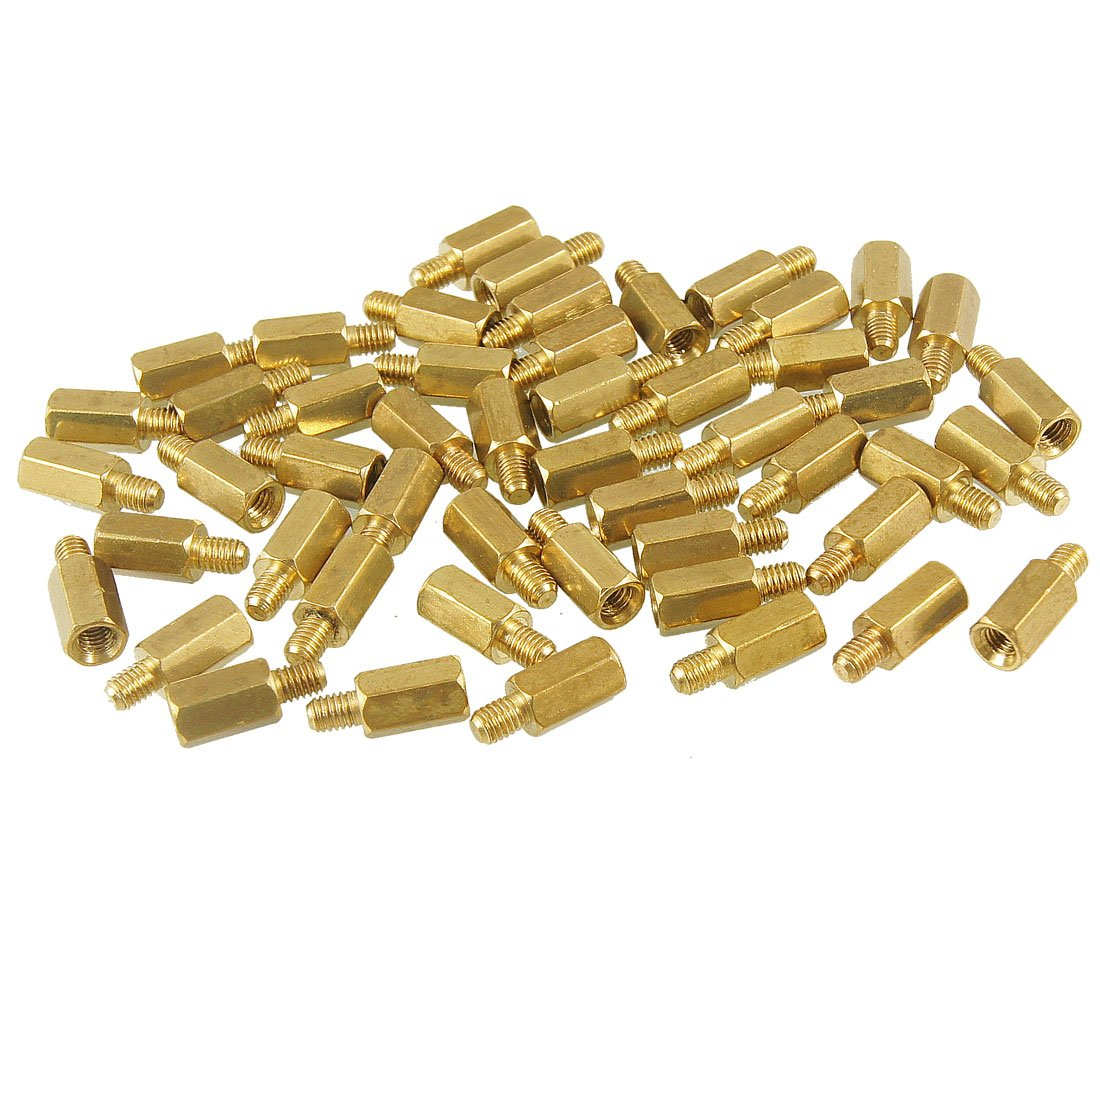 CSS M3 Male x M3 Female 8mm Long Hexagonal Brass PCB Standoffs Spacers 50 Pcs